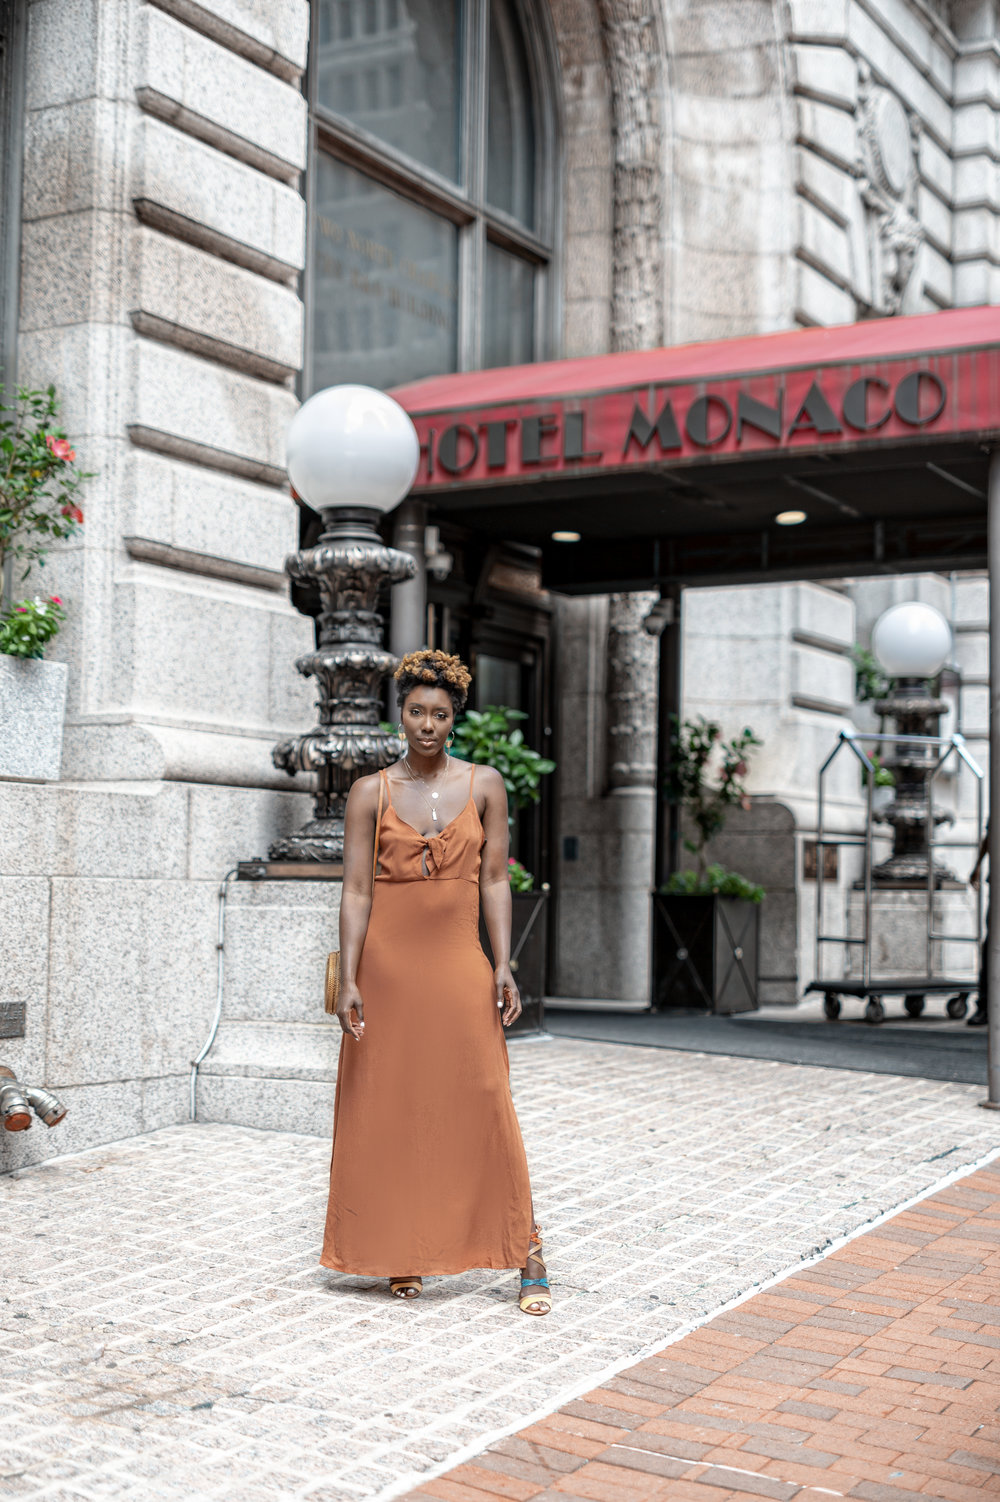 Dayna-Bolden-Kimpton-Hotel-Monaco-Baltimore-Staycation-7.jpg